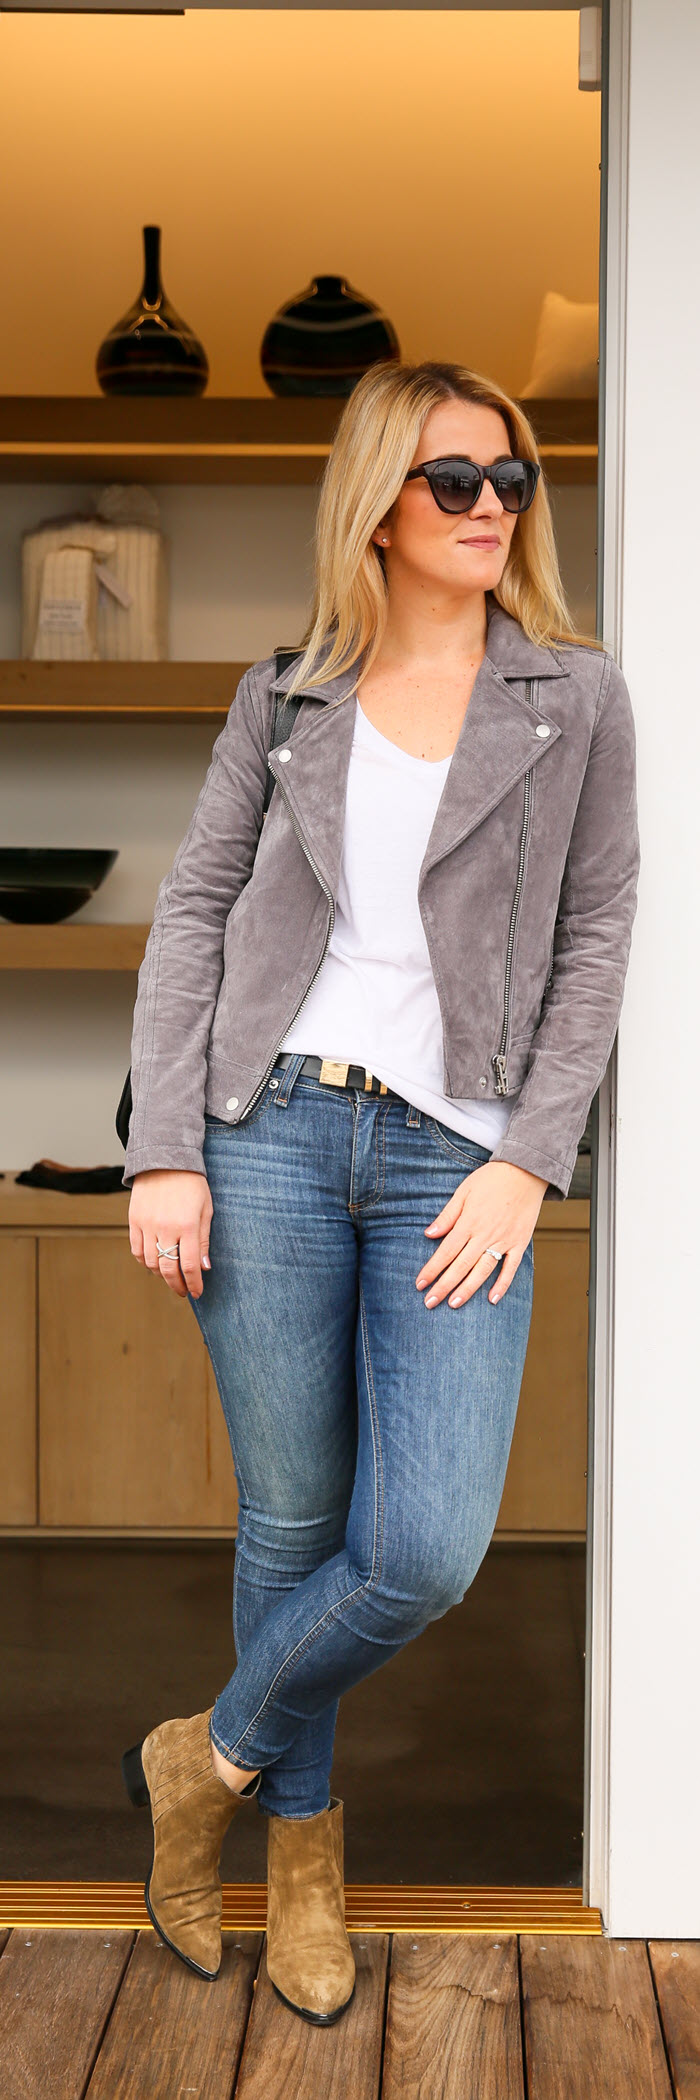 Grey Suede Moto Jacket Outfit at LIDO Newport Beach | Luciu0026#39;s Morsels